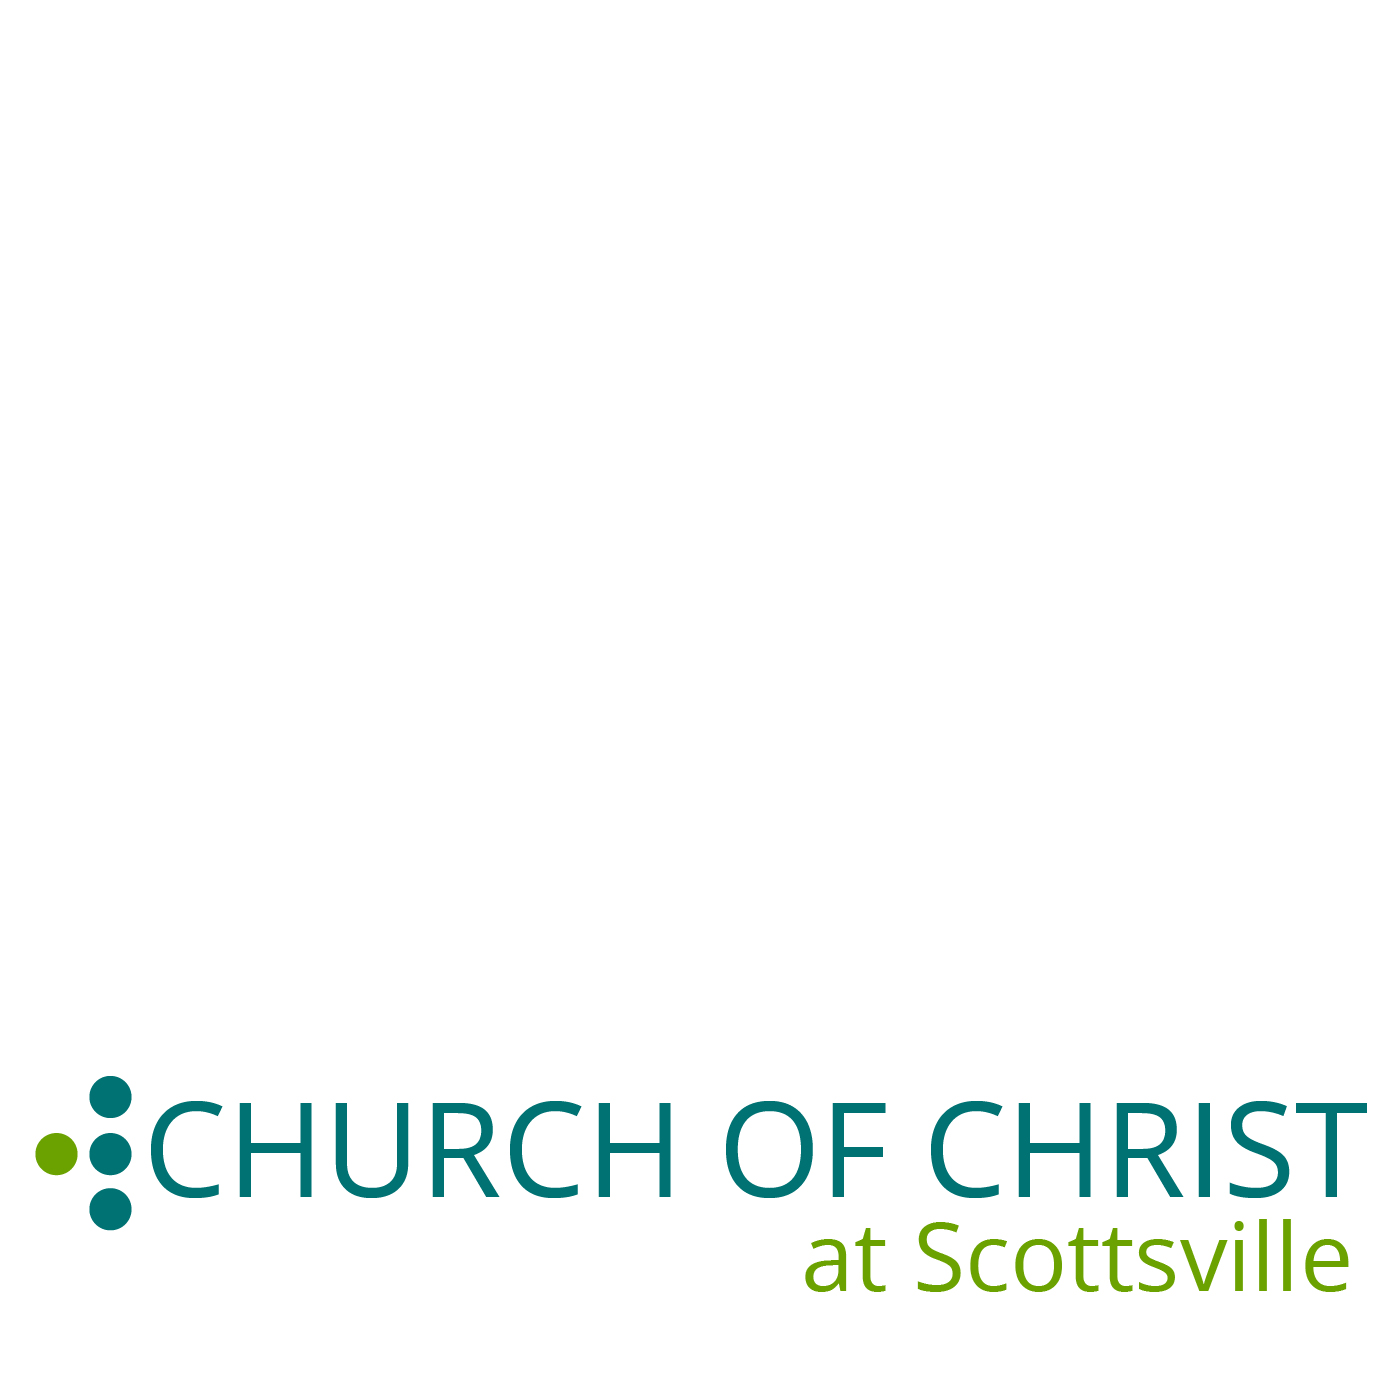 Scottsville Church